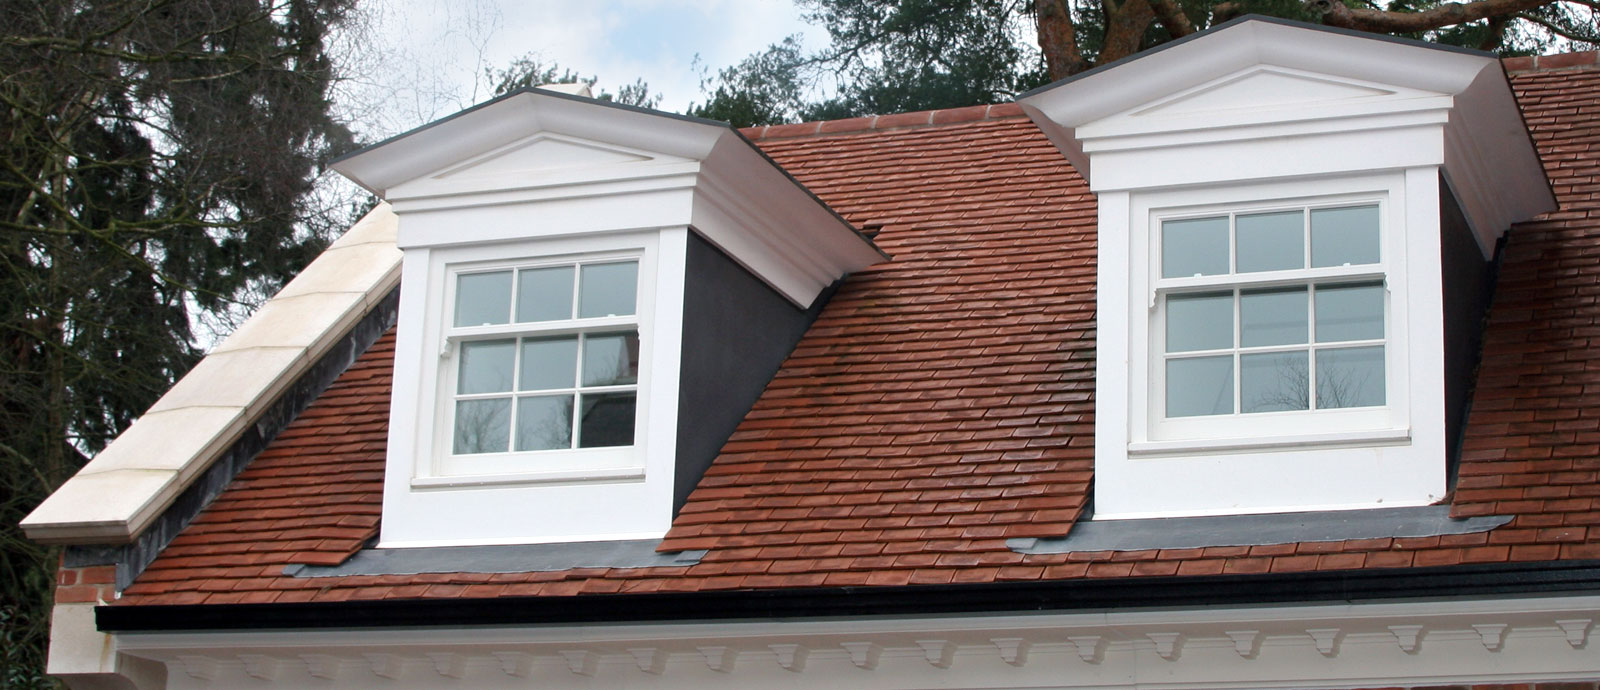 Premade roof dormers cost efficient for Prefab roof